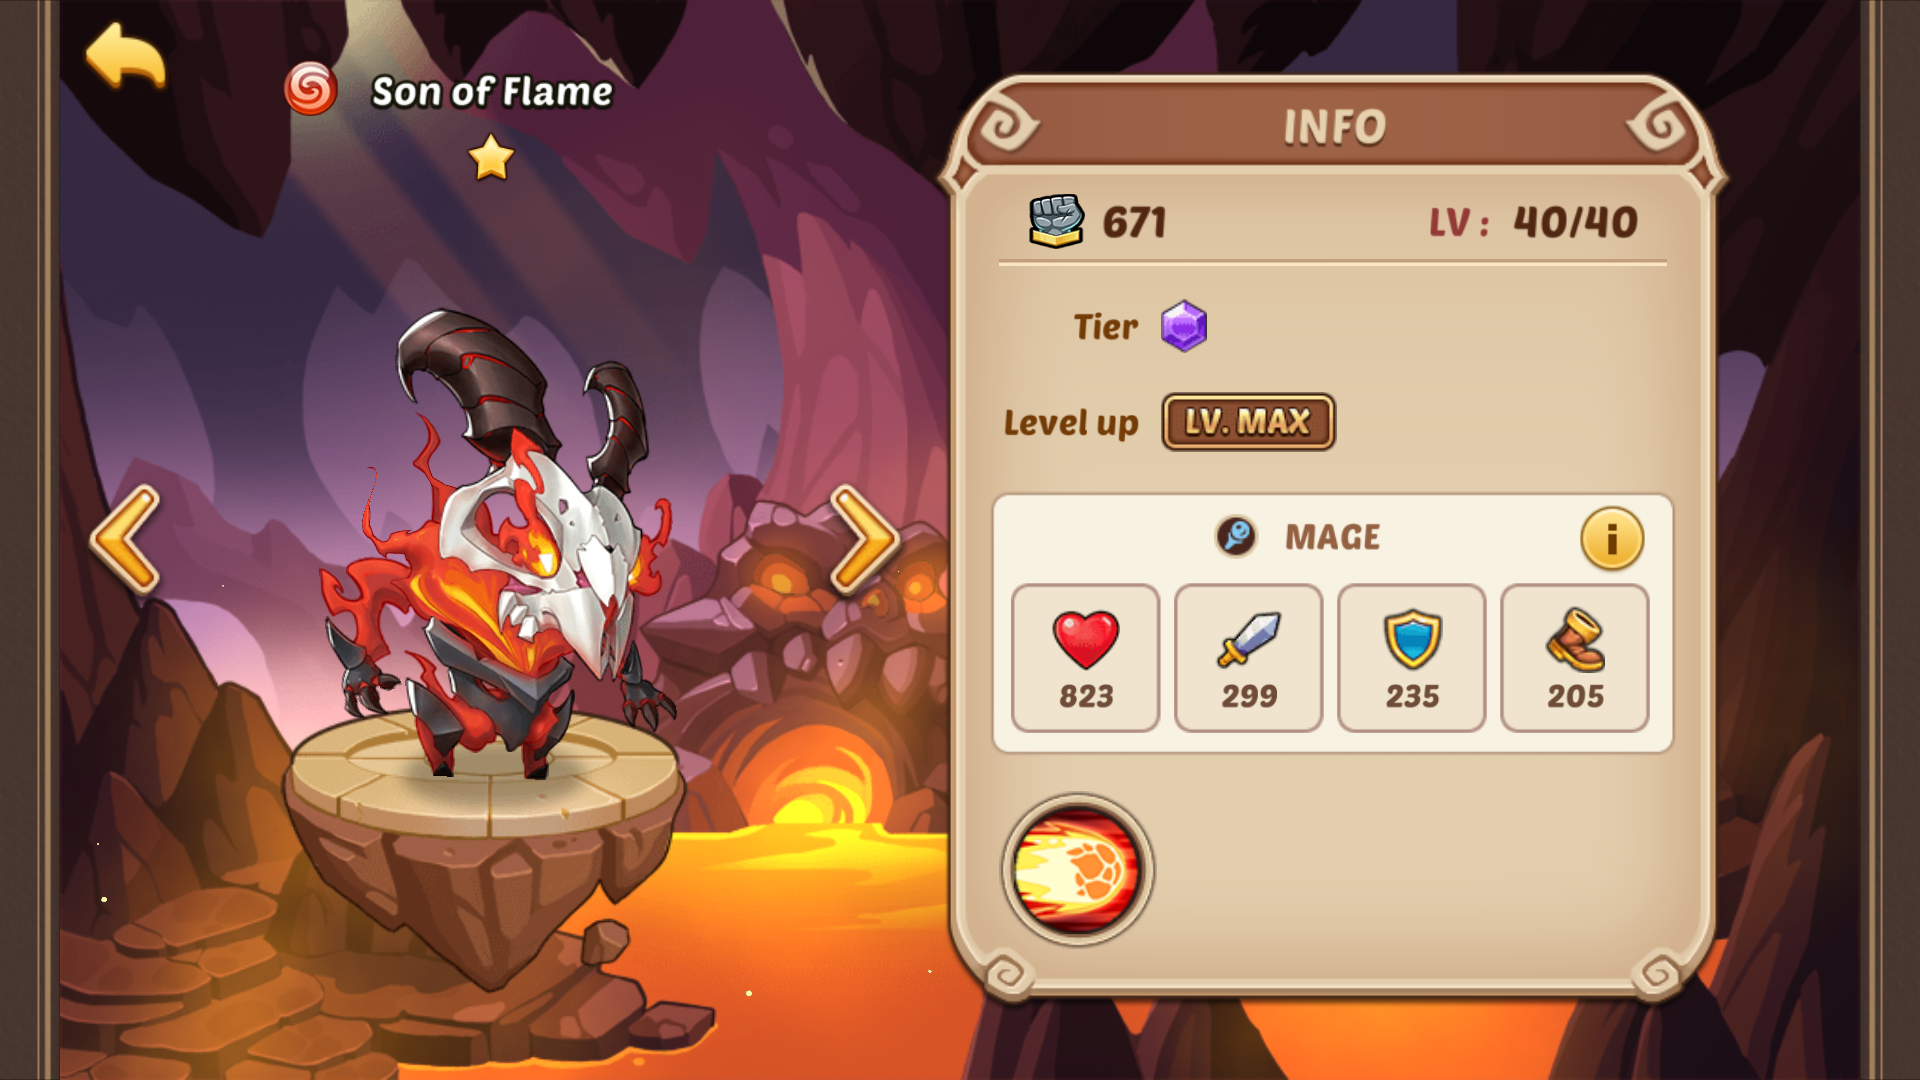 Son of Flame